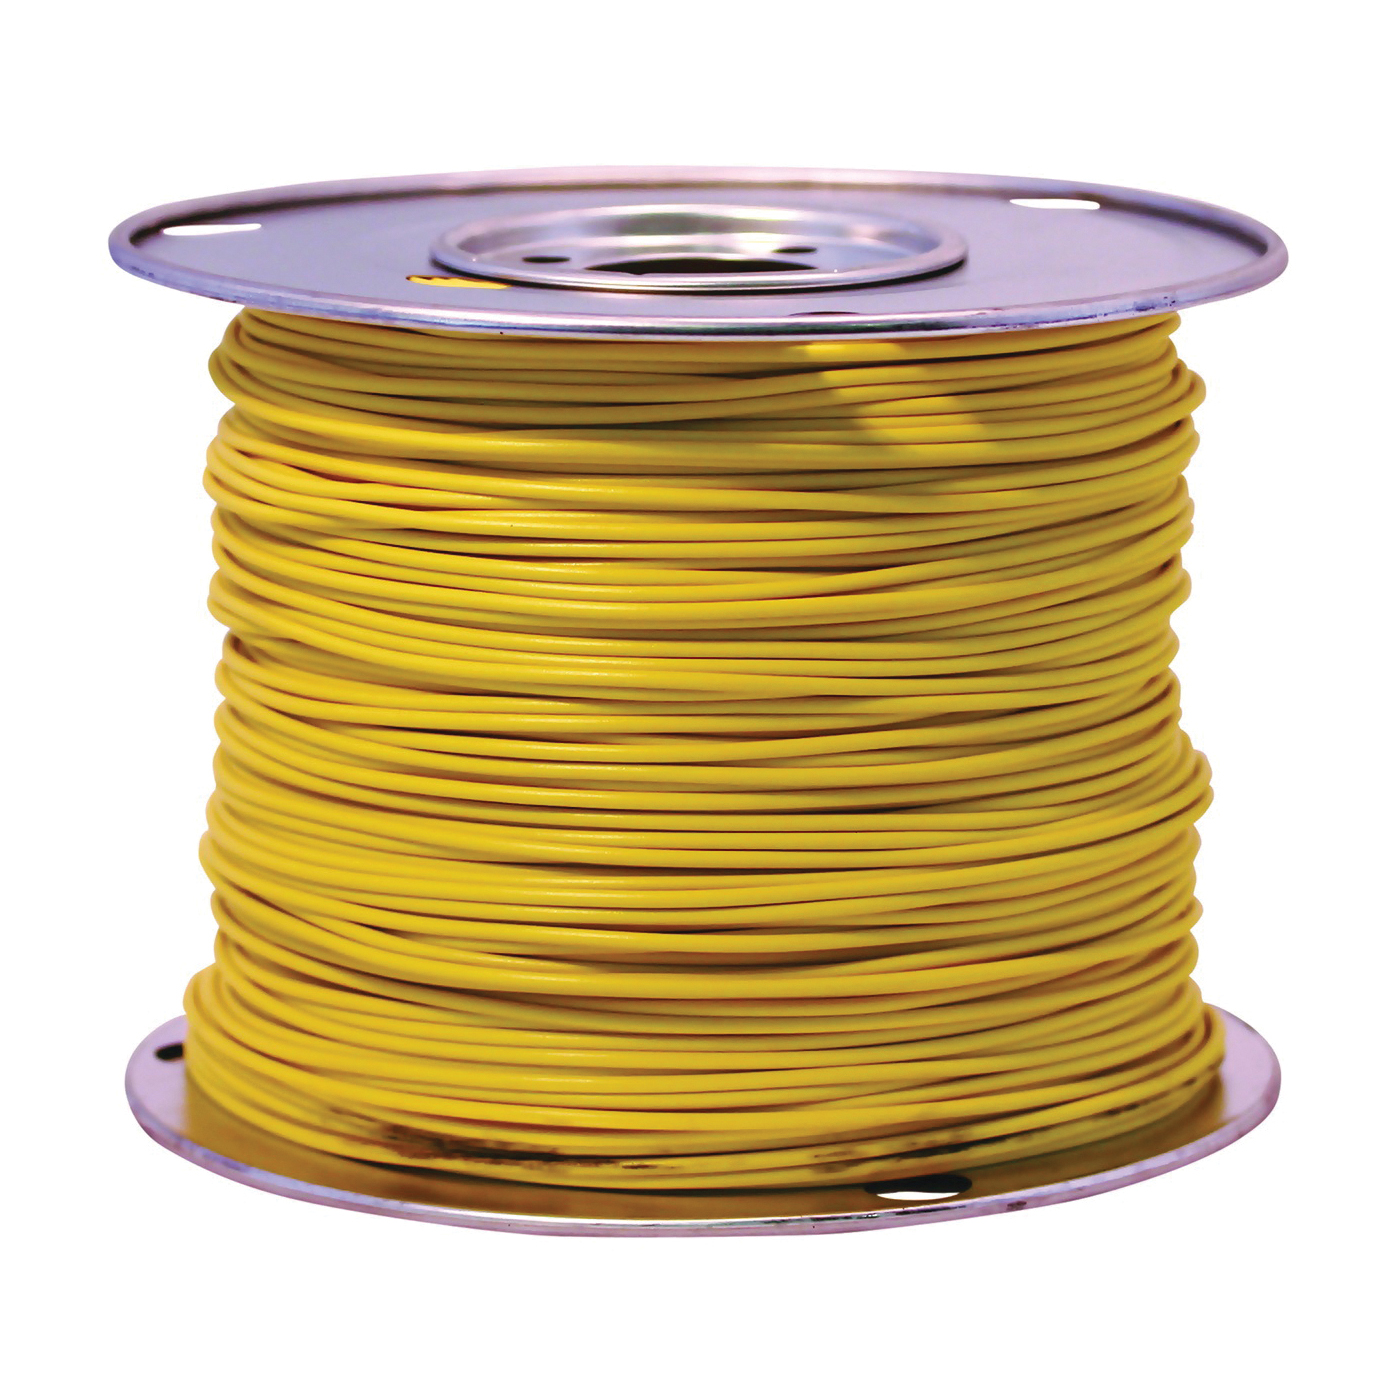 Picture of CCI 55843823 Primary Wire, 18 AWG Wire, 1 -Conductor, 60 VDC, Copper Conductor, Yellow Sheath